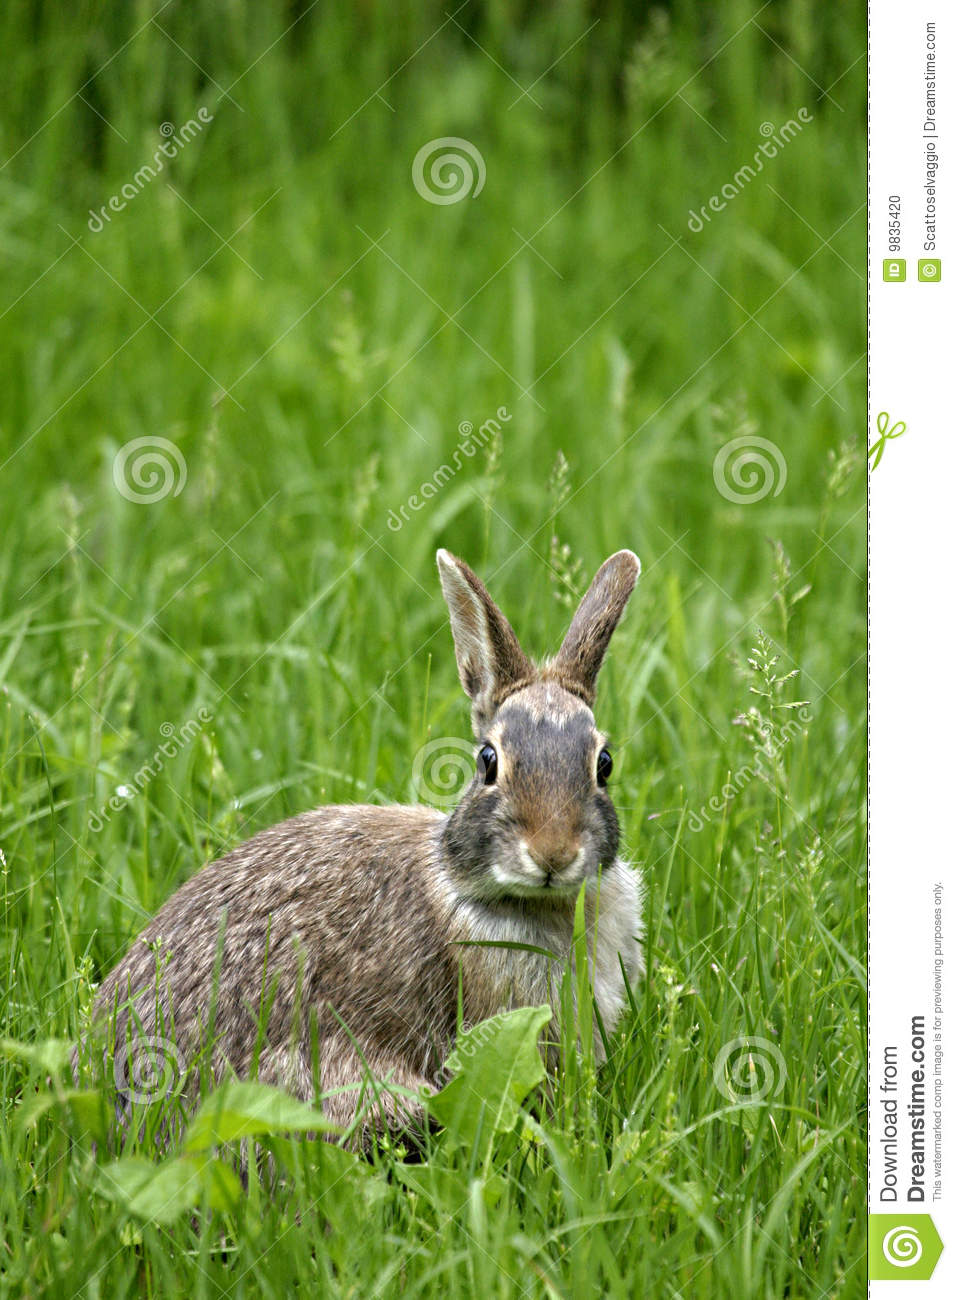 The Eastern Cottontail (Sylvilagus floridanus)